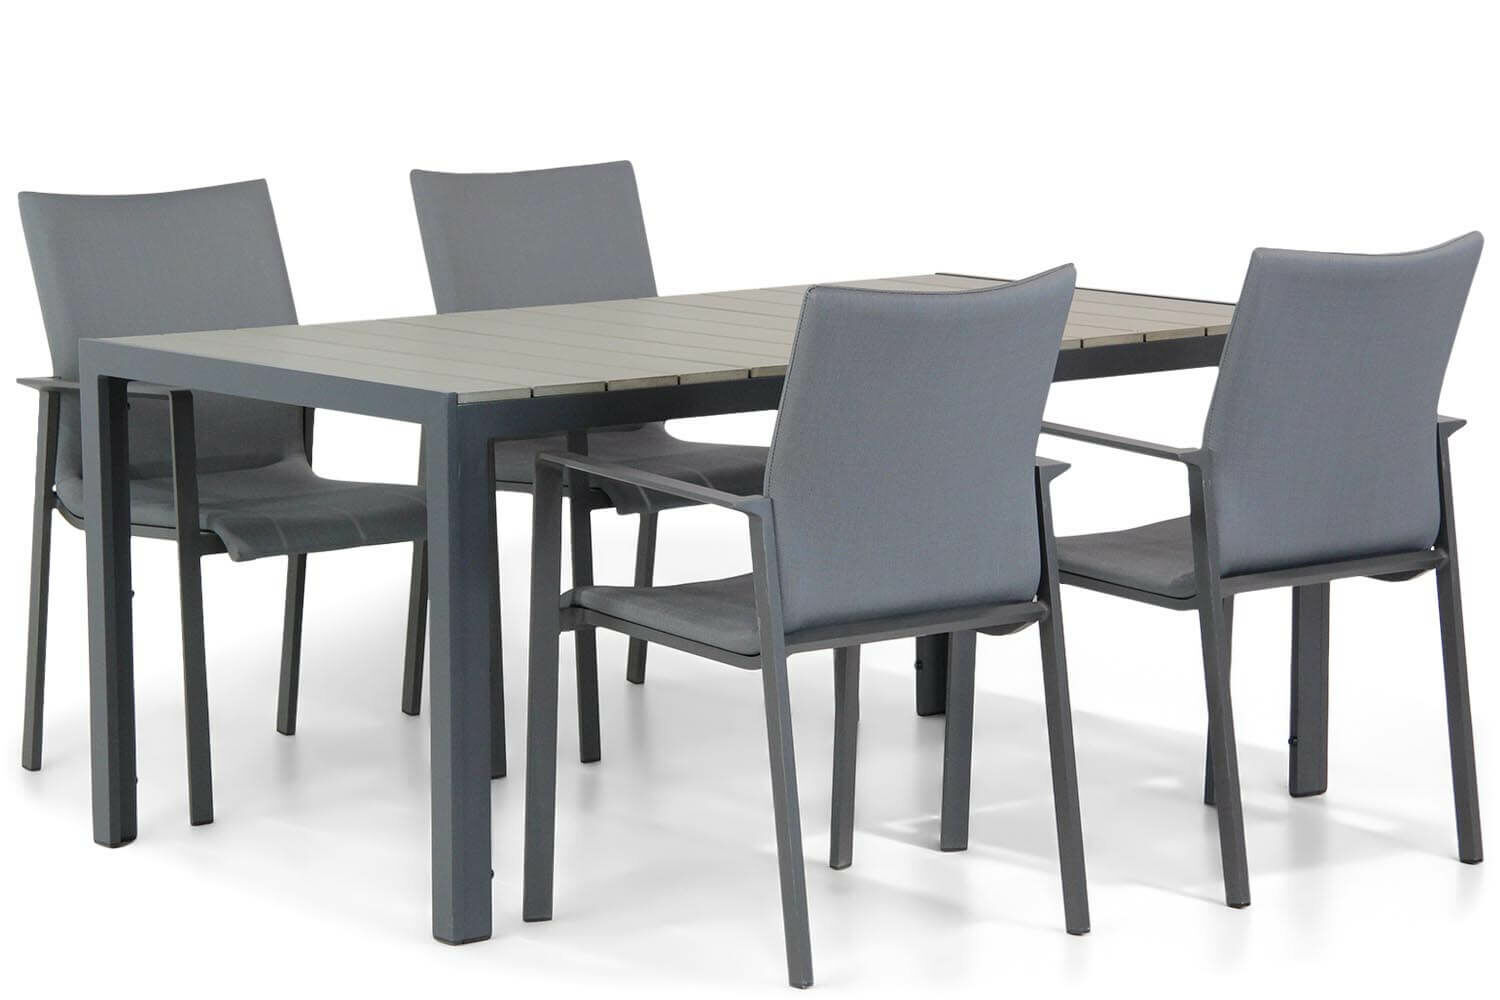 Lifestyle Rome/Poro 160 cm dining tuinset 5-delig